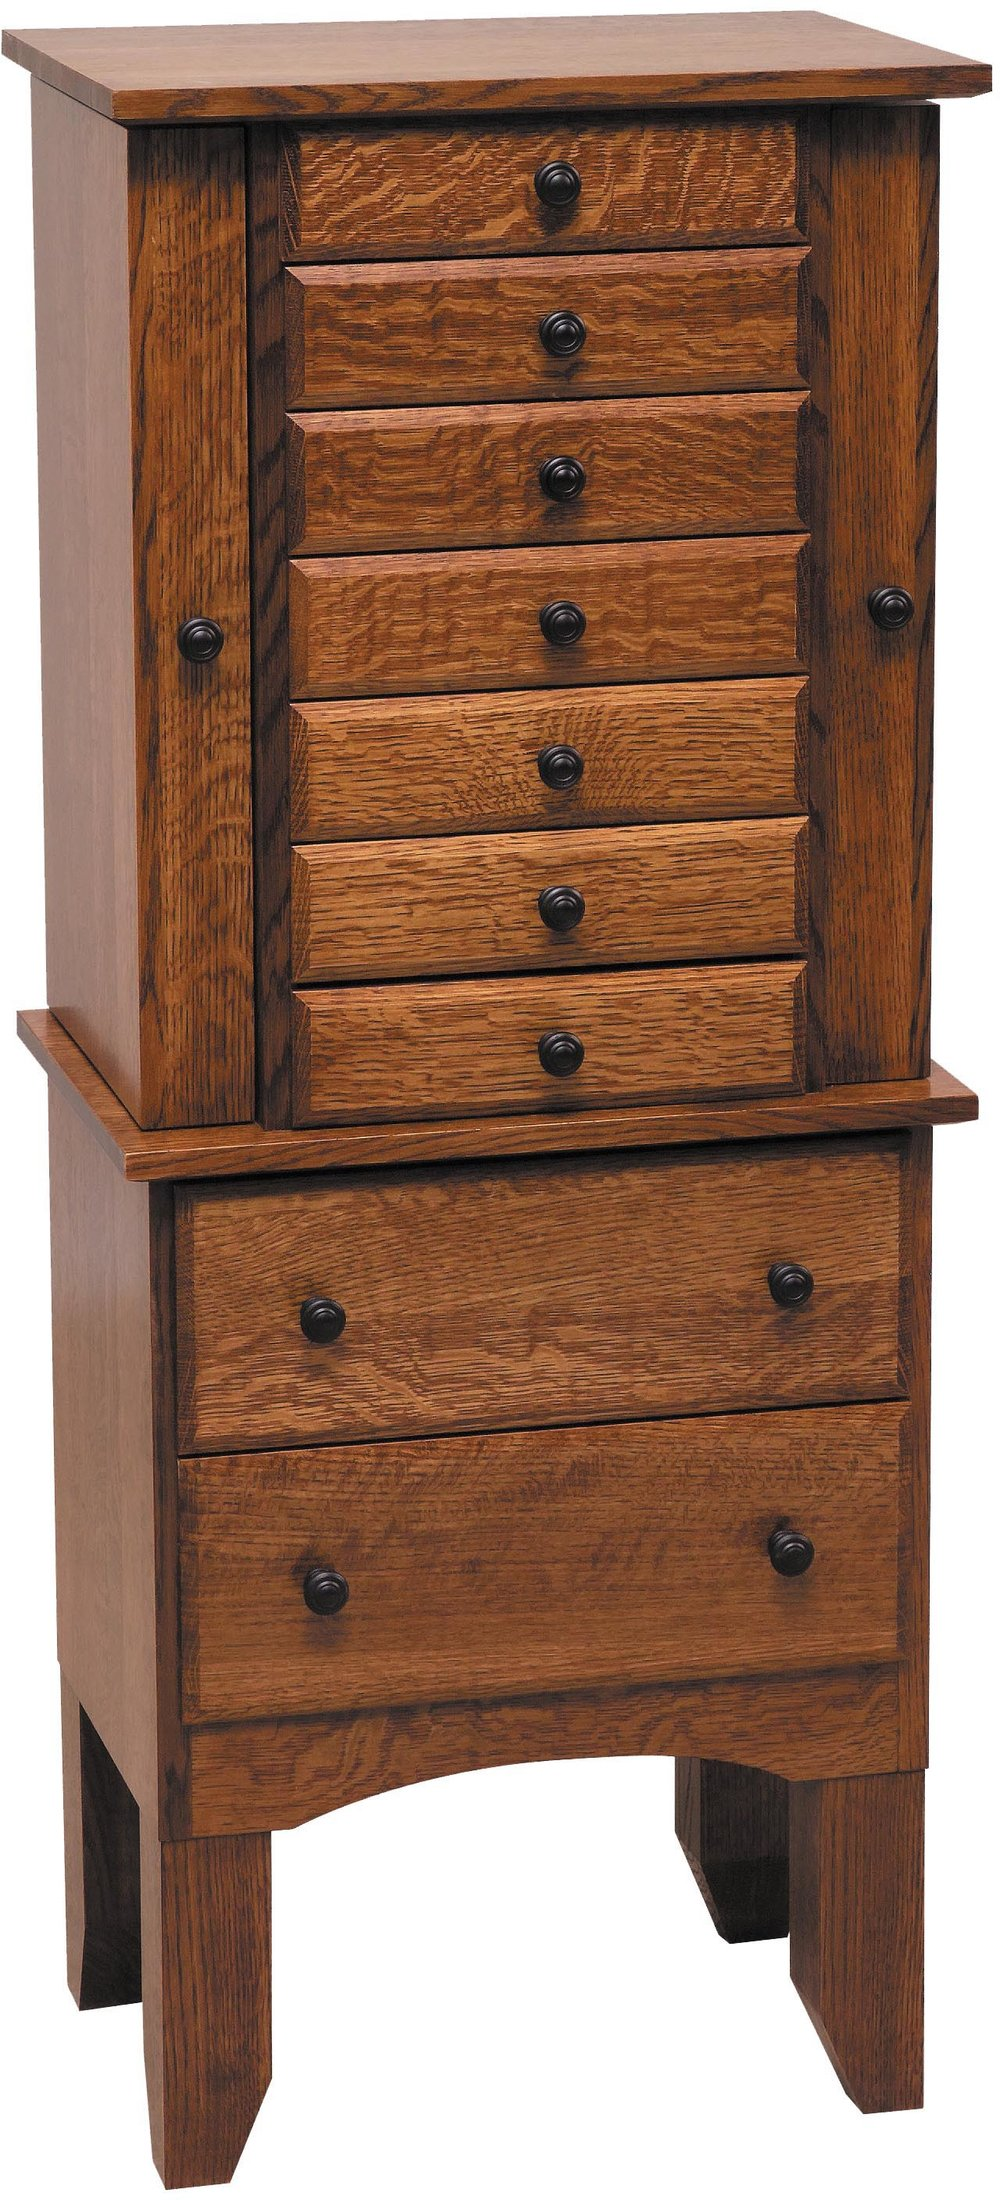 hardwood amishcraft furniture for sale